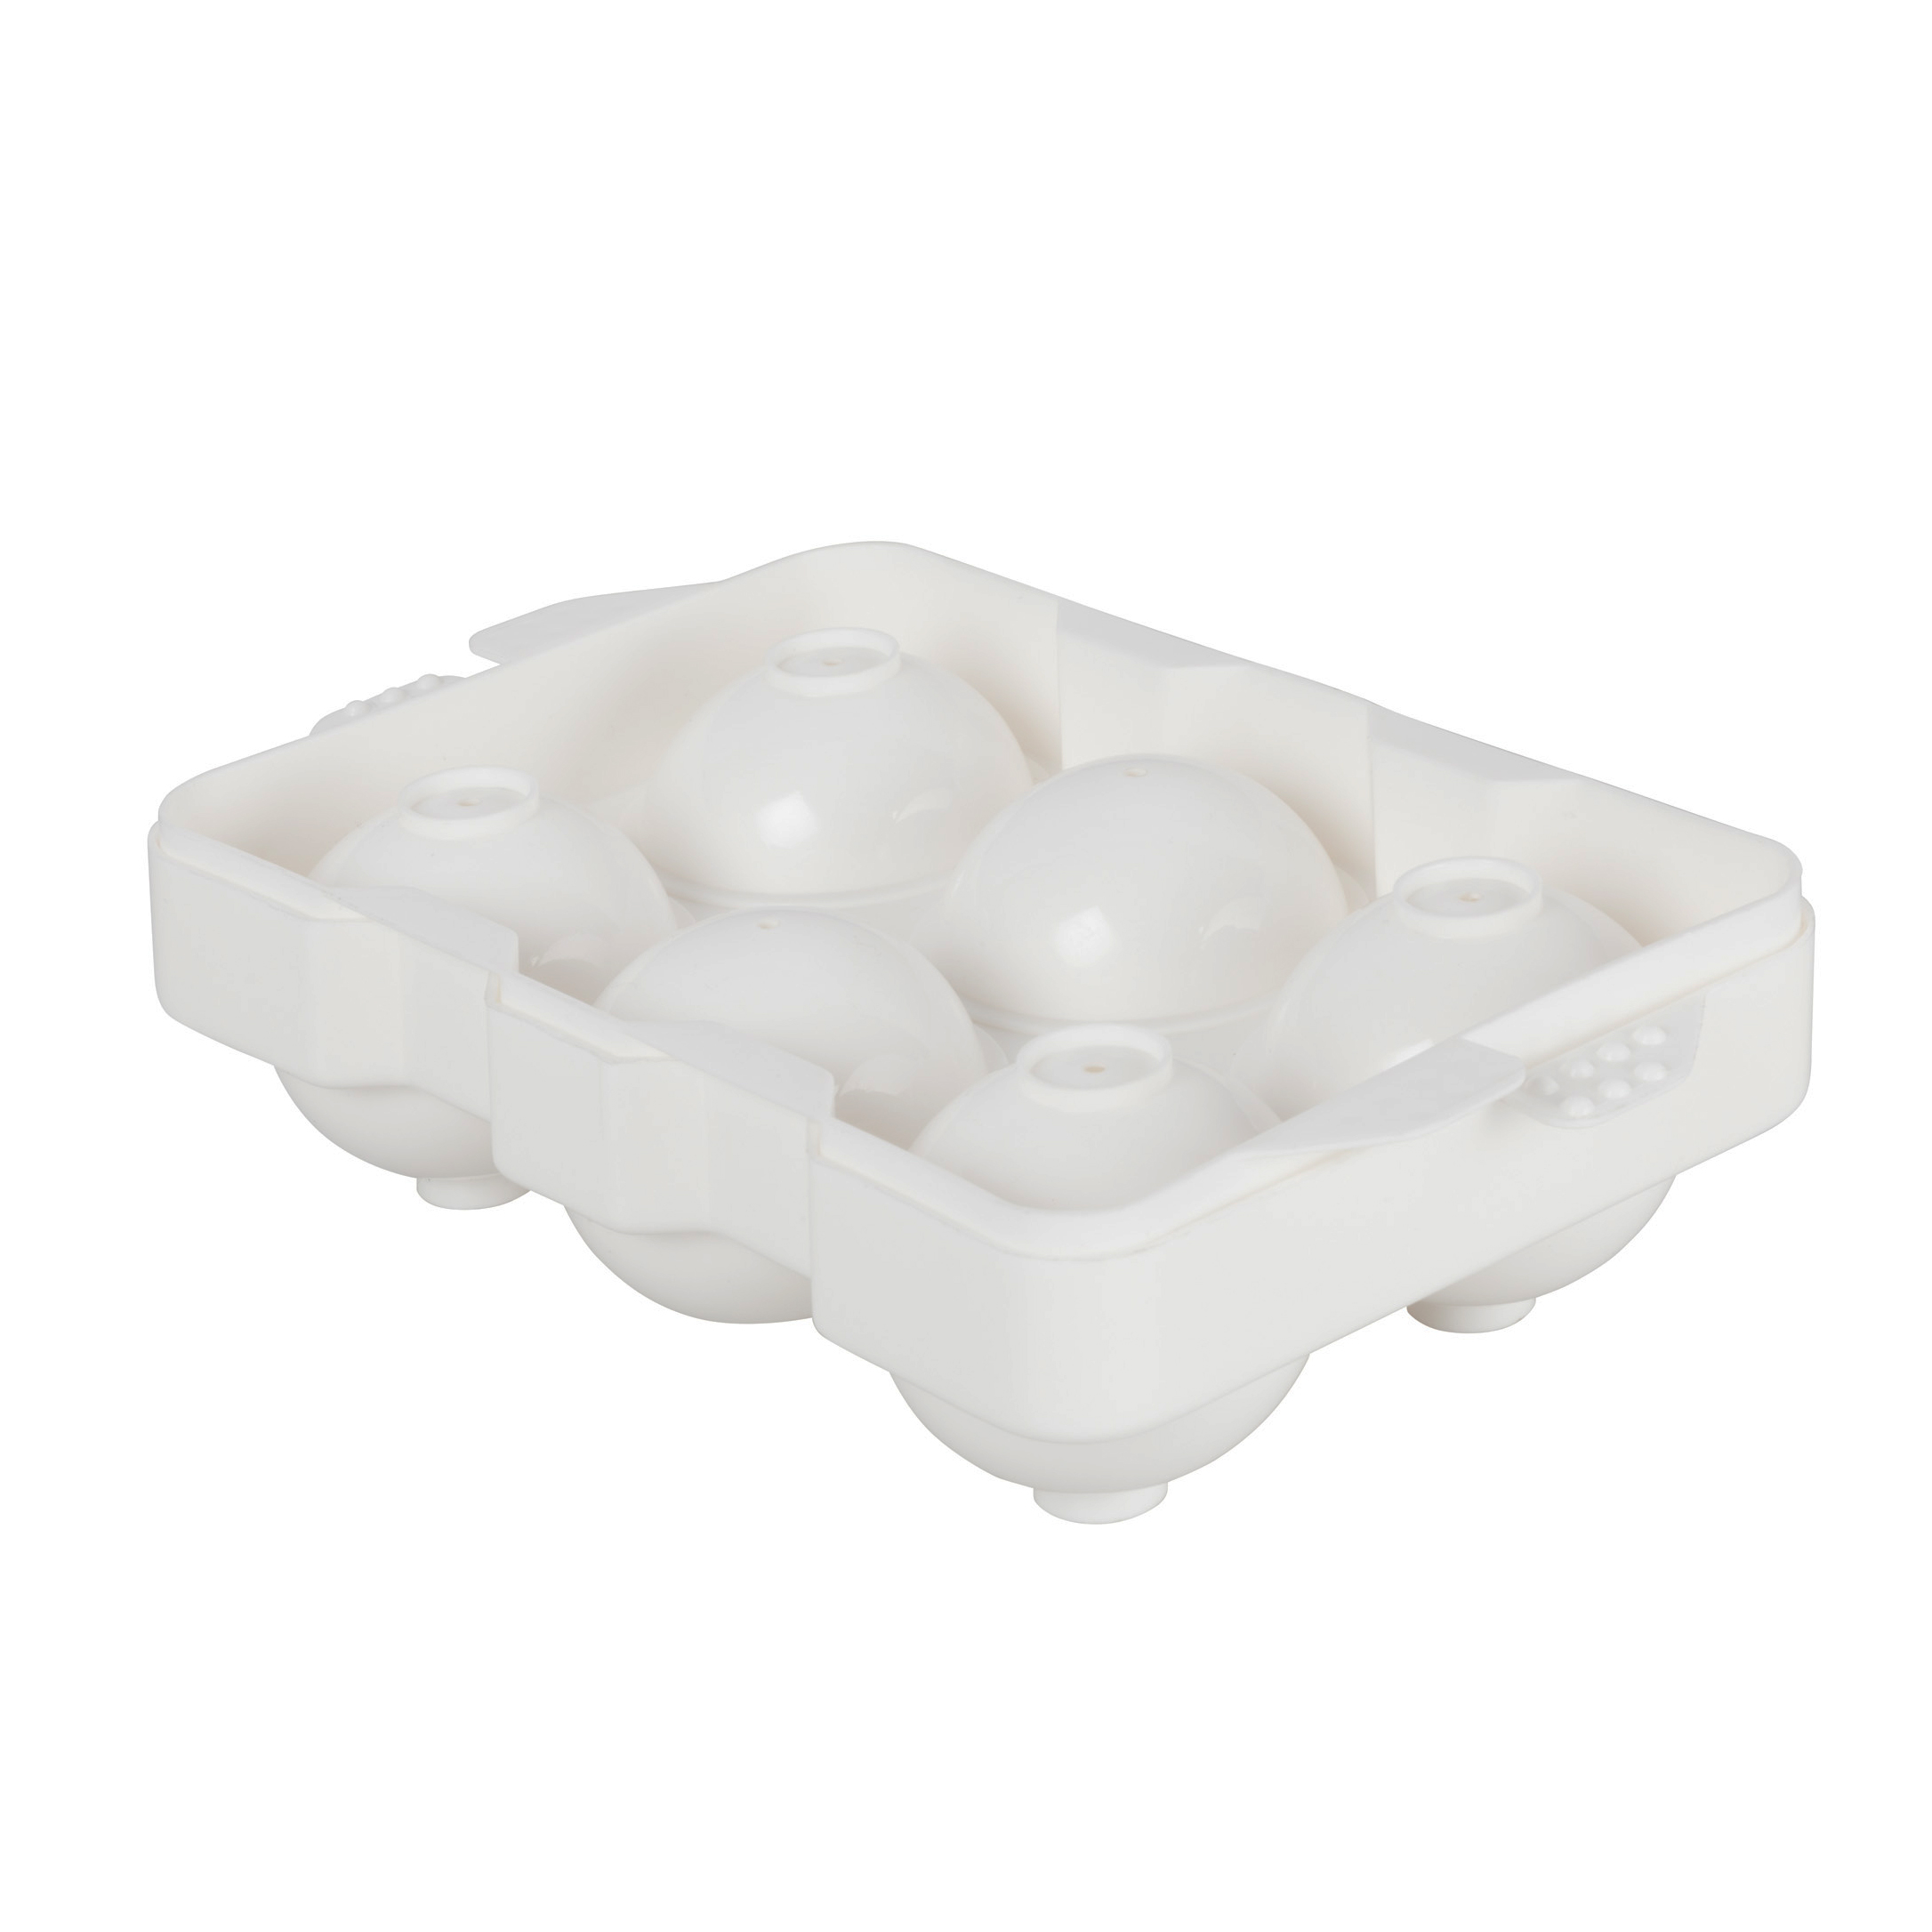 Winco ICCP-6W ice cube tray